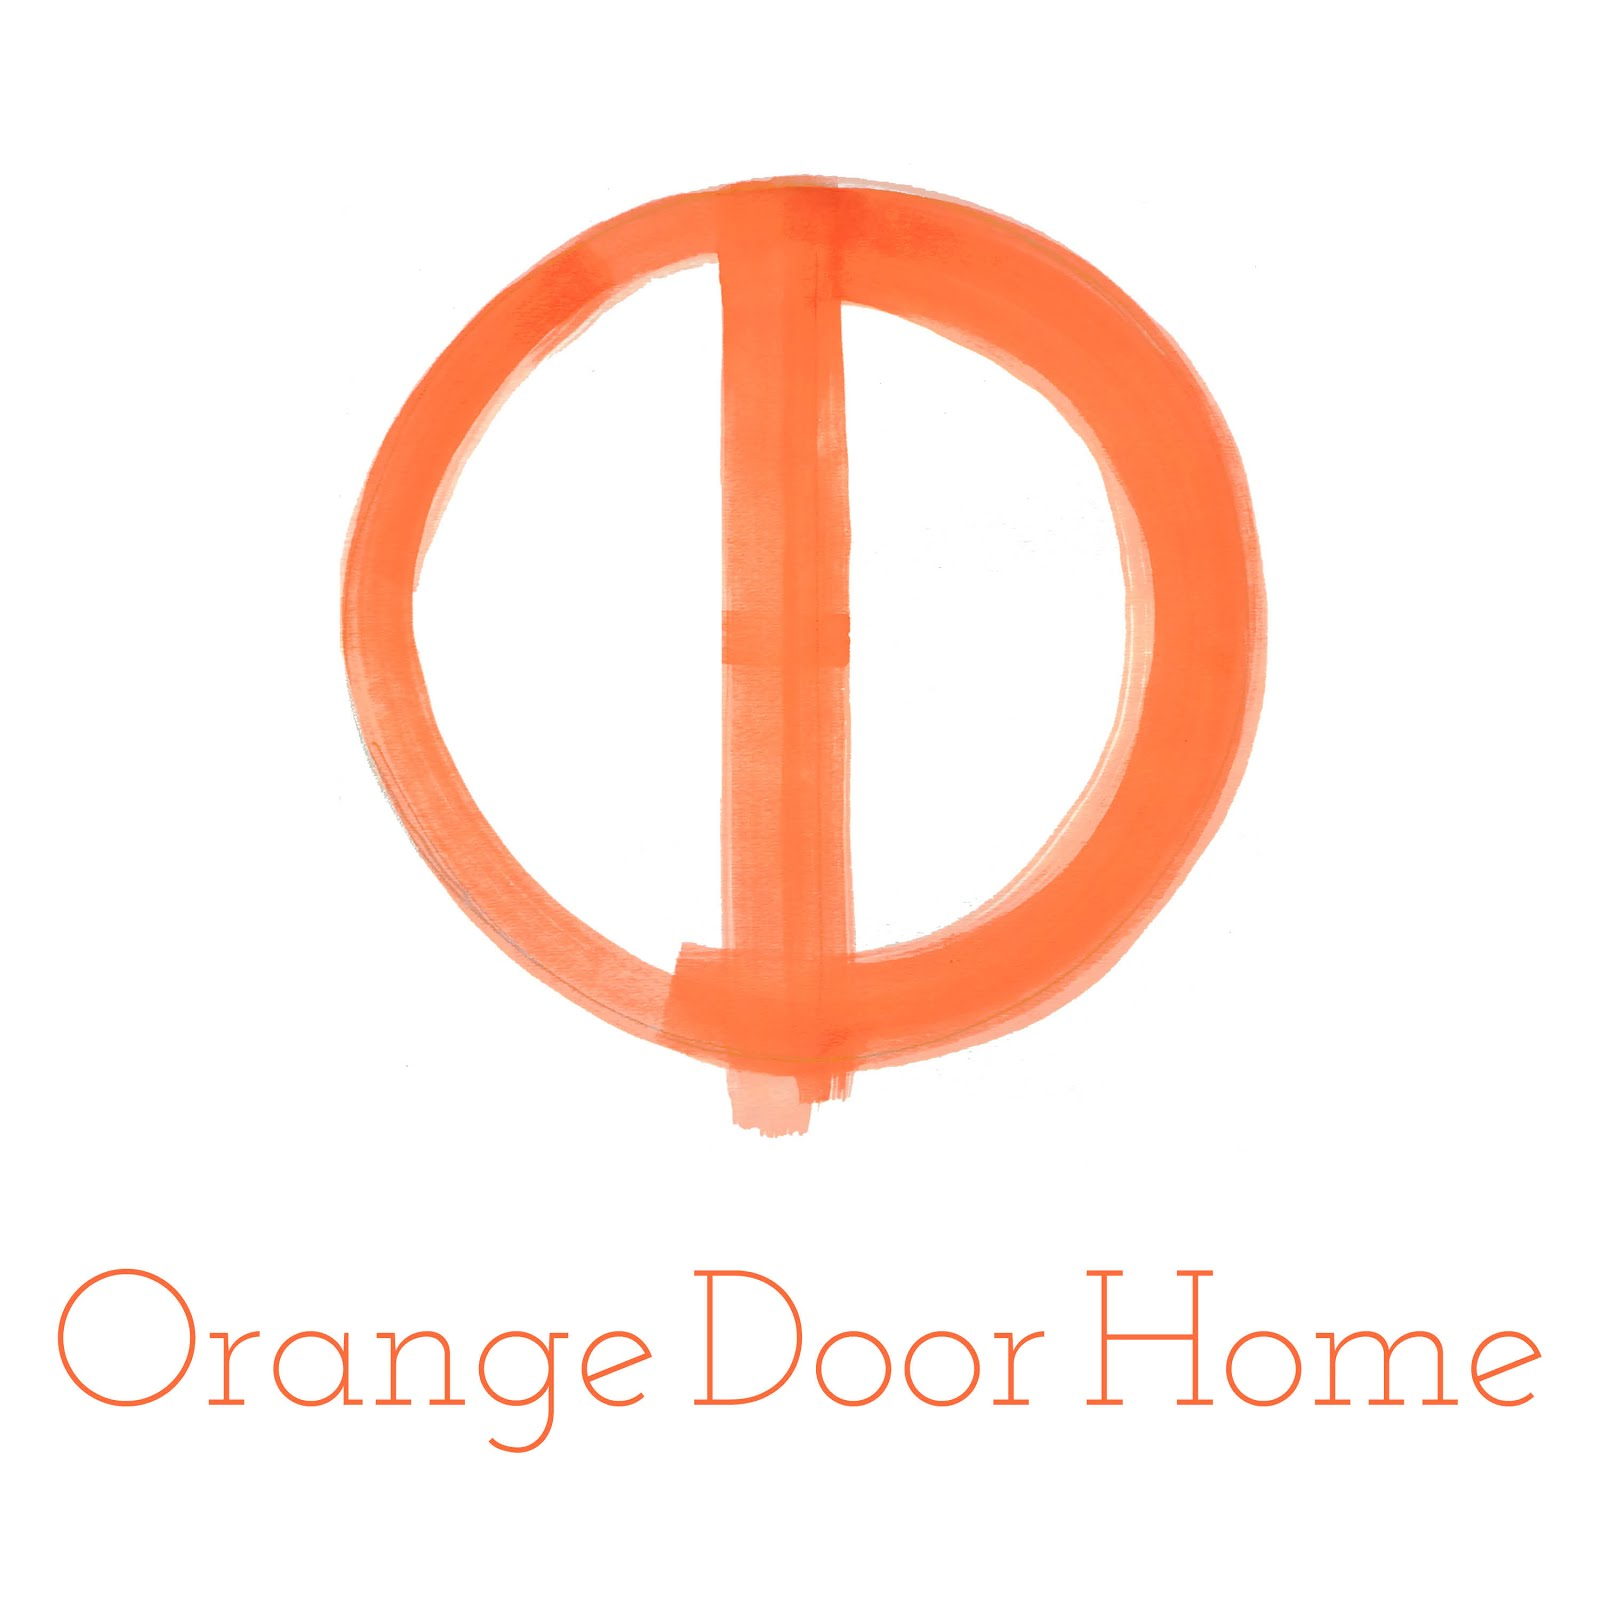 SHOP Orange Door Home!